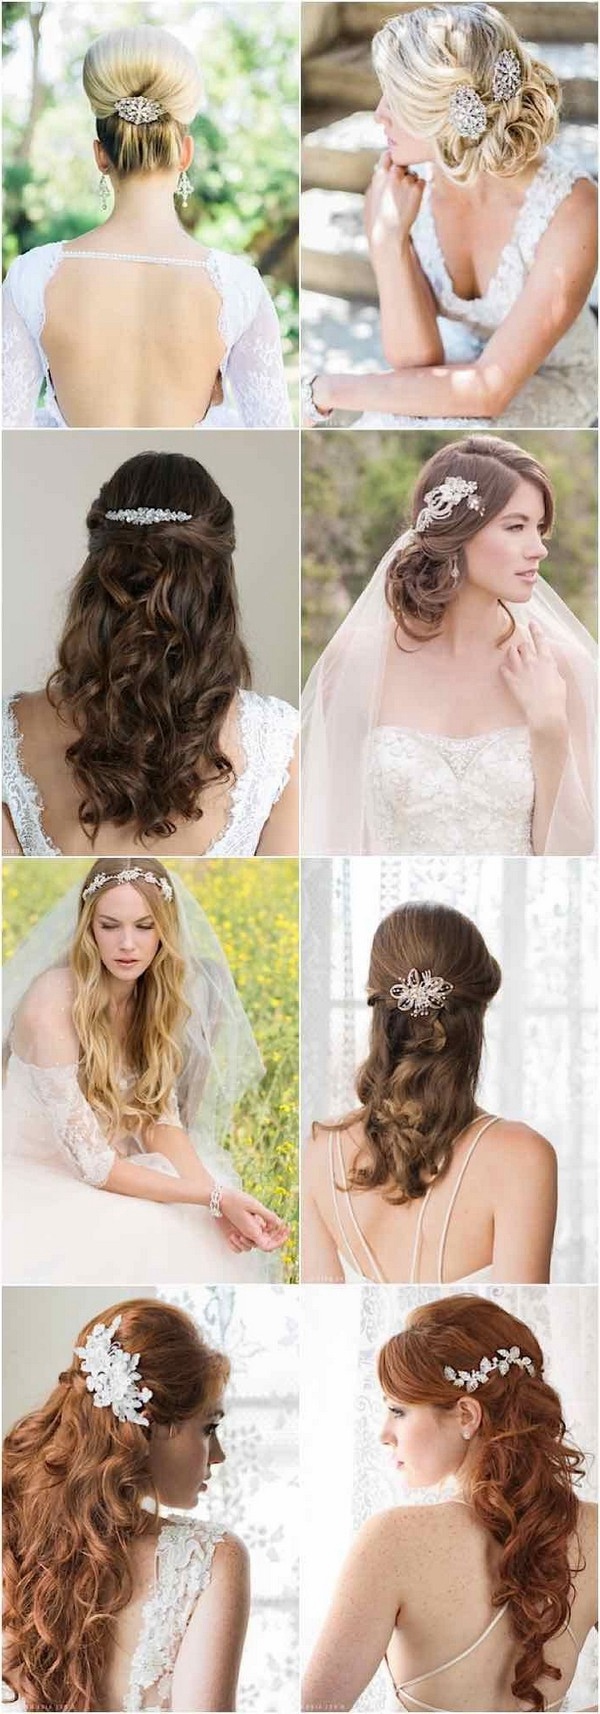 100 romantic long wedding hairstyles 2018 curls half up updos wedding hairstyles with gorgeous accessories from bel aire junglespirit